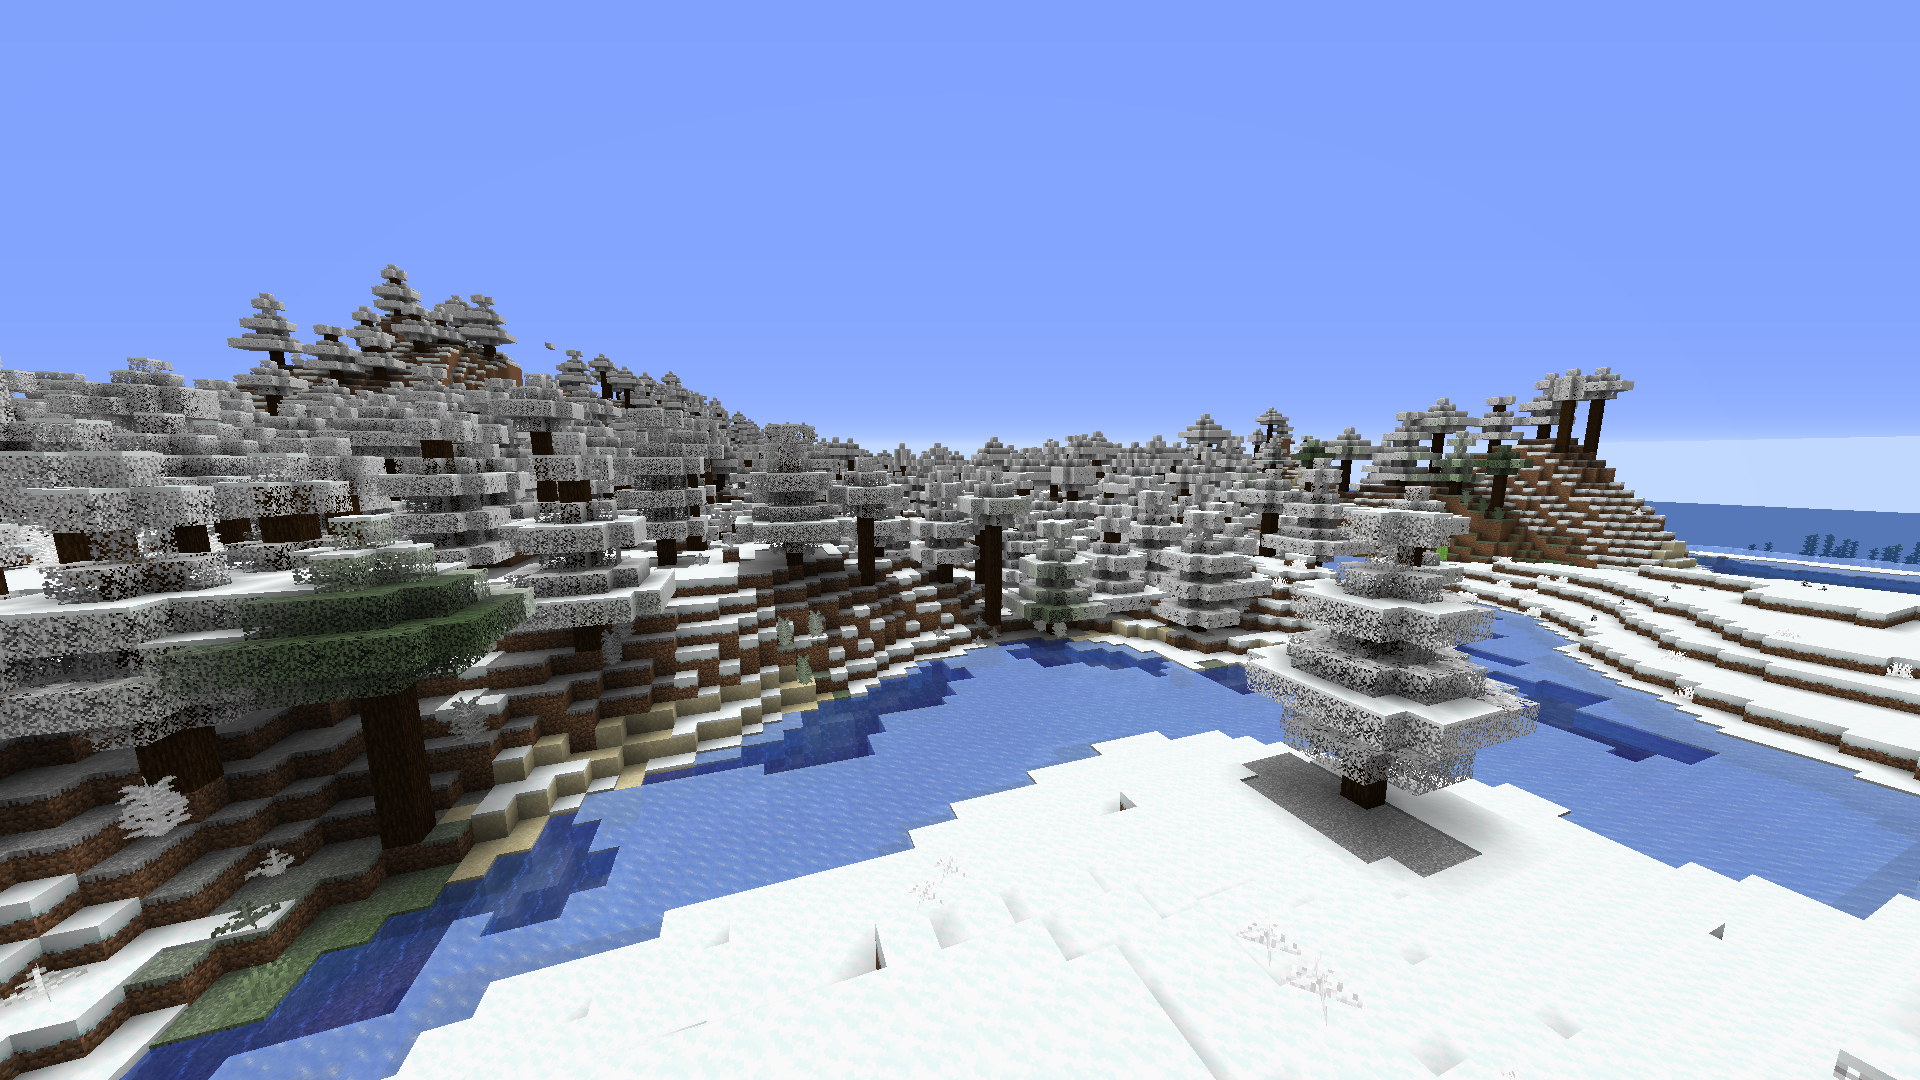 [Optifine] White Leaves and Plants for Snow Biomes For 1.16 and 1.12 Minecraft Texture Pack